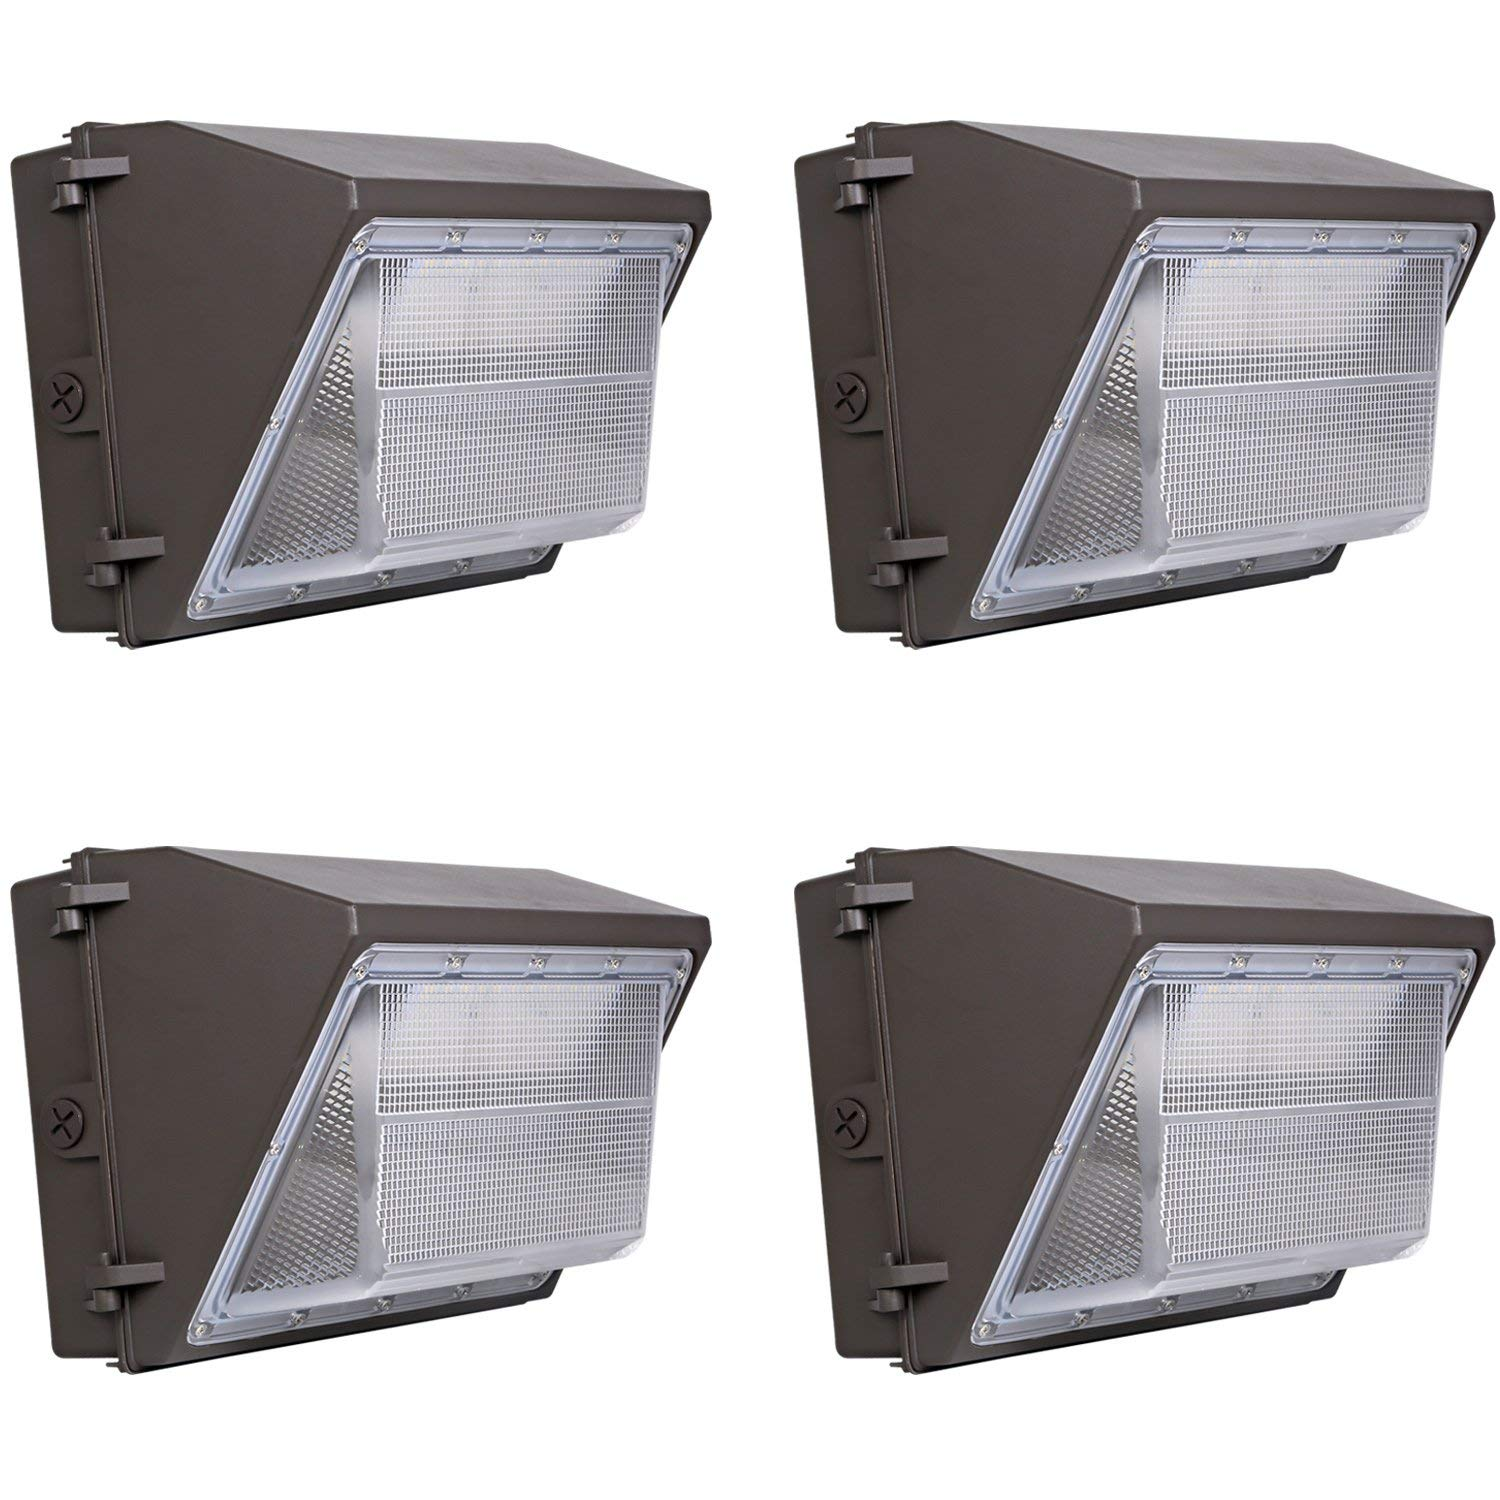 Hykolity 100W 11000lm LED Wall Pack Light, 0-10V Dimmable Outdoor LED Wall Packs, [750W MH/HPS Equivalent] Dusk to Dawn Photocell Optional, 5000K DLC Listed- 4 Pack